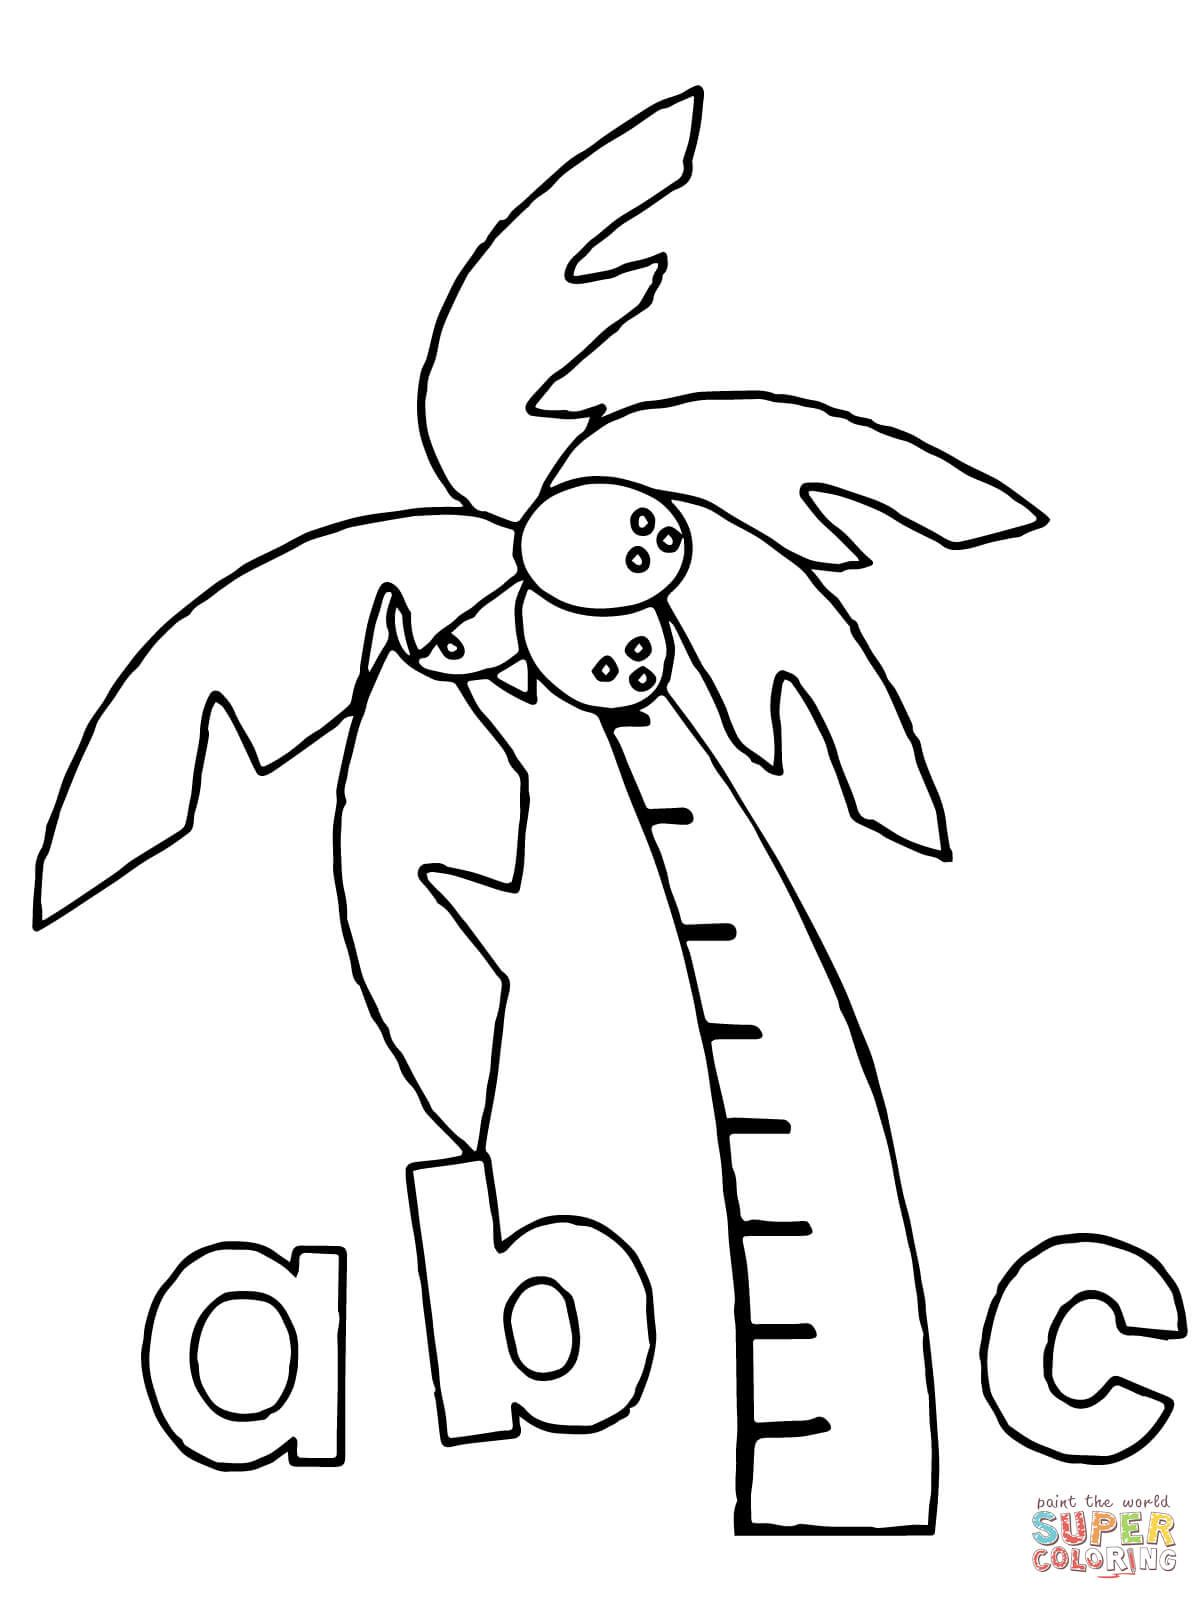 Chicka Chicka Boom Boom Abc coloring page from Chicka